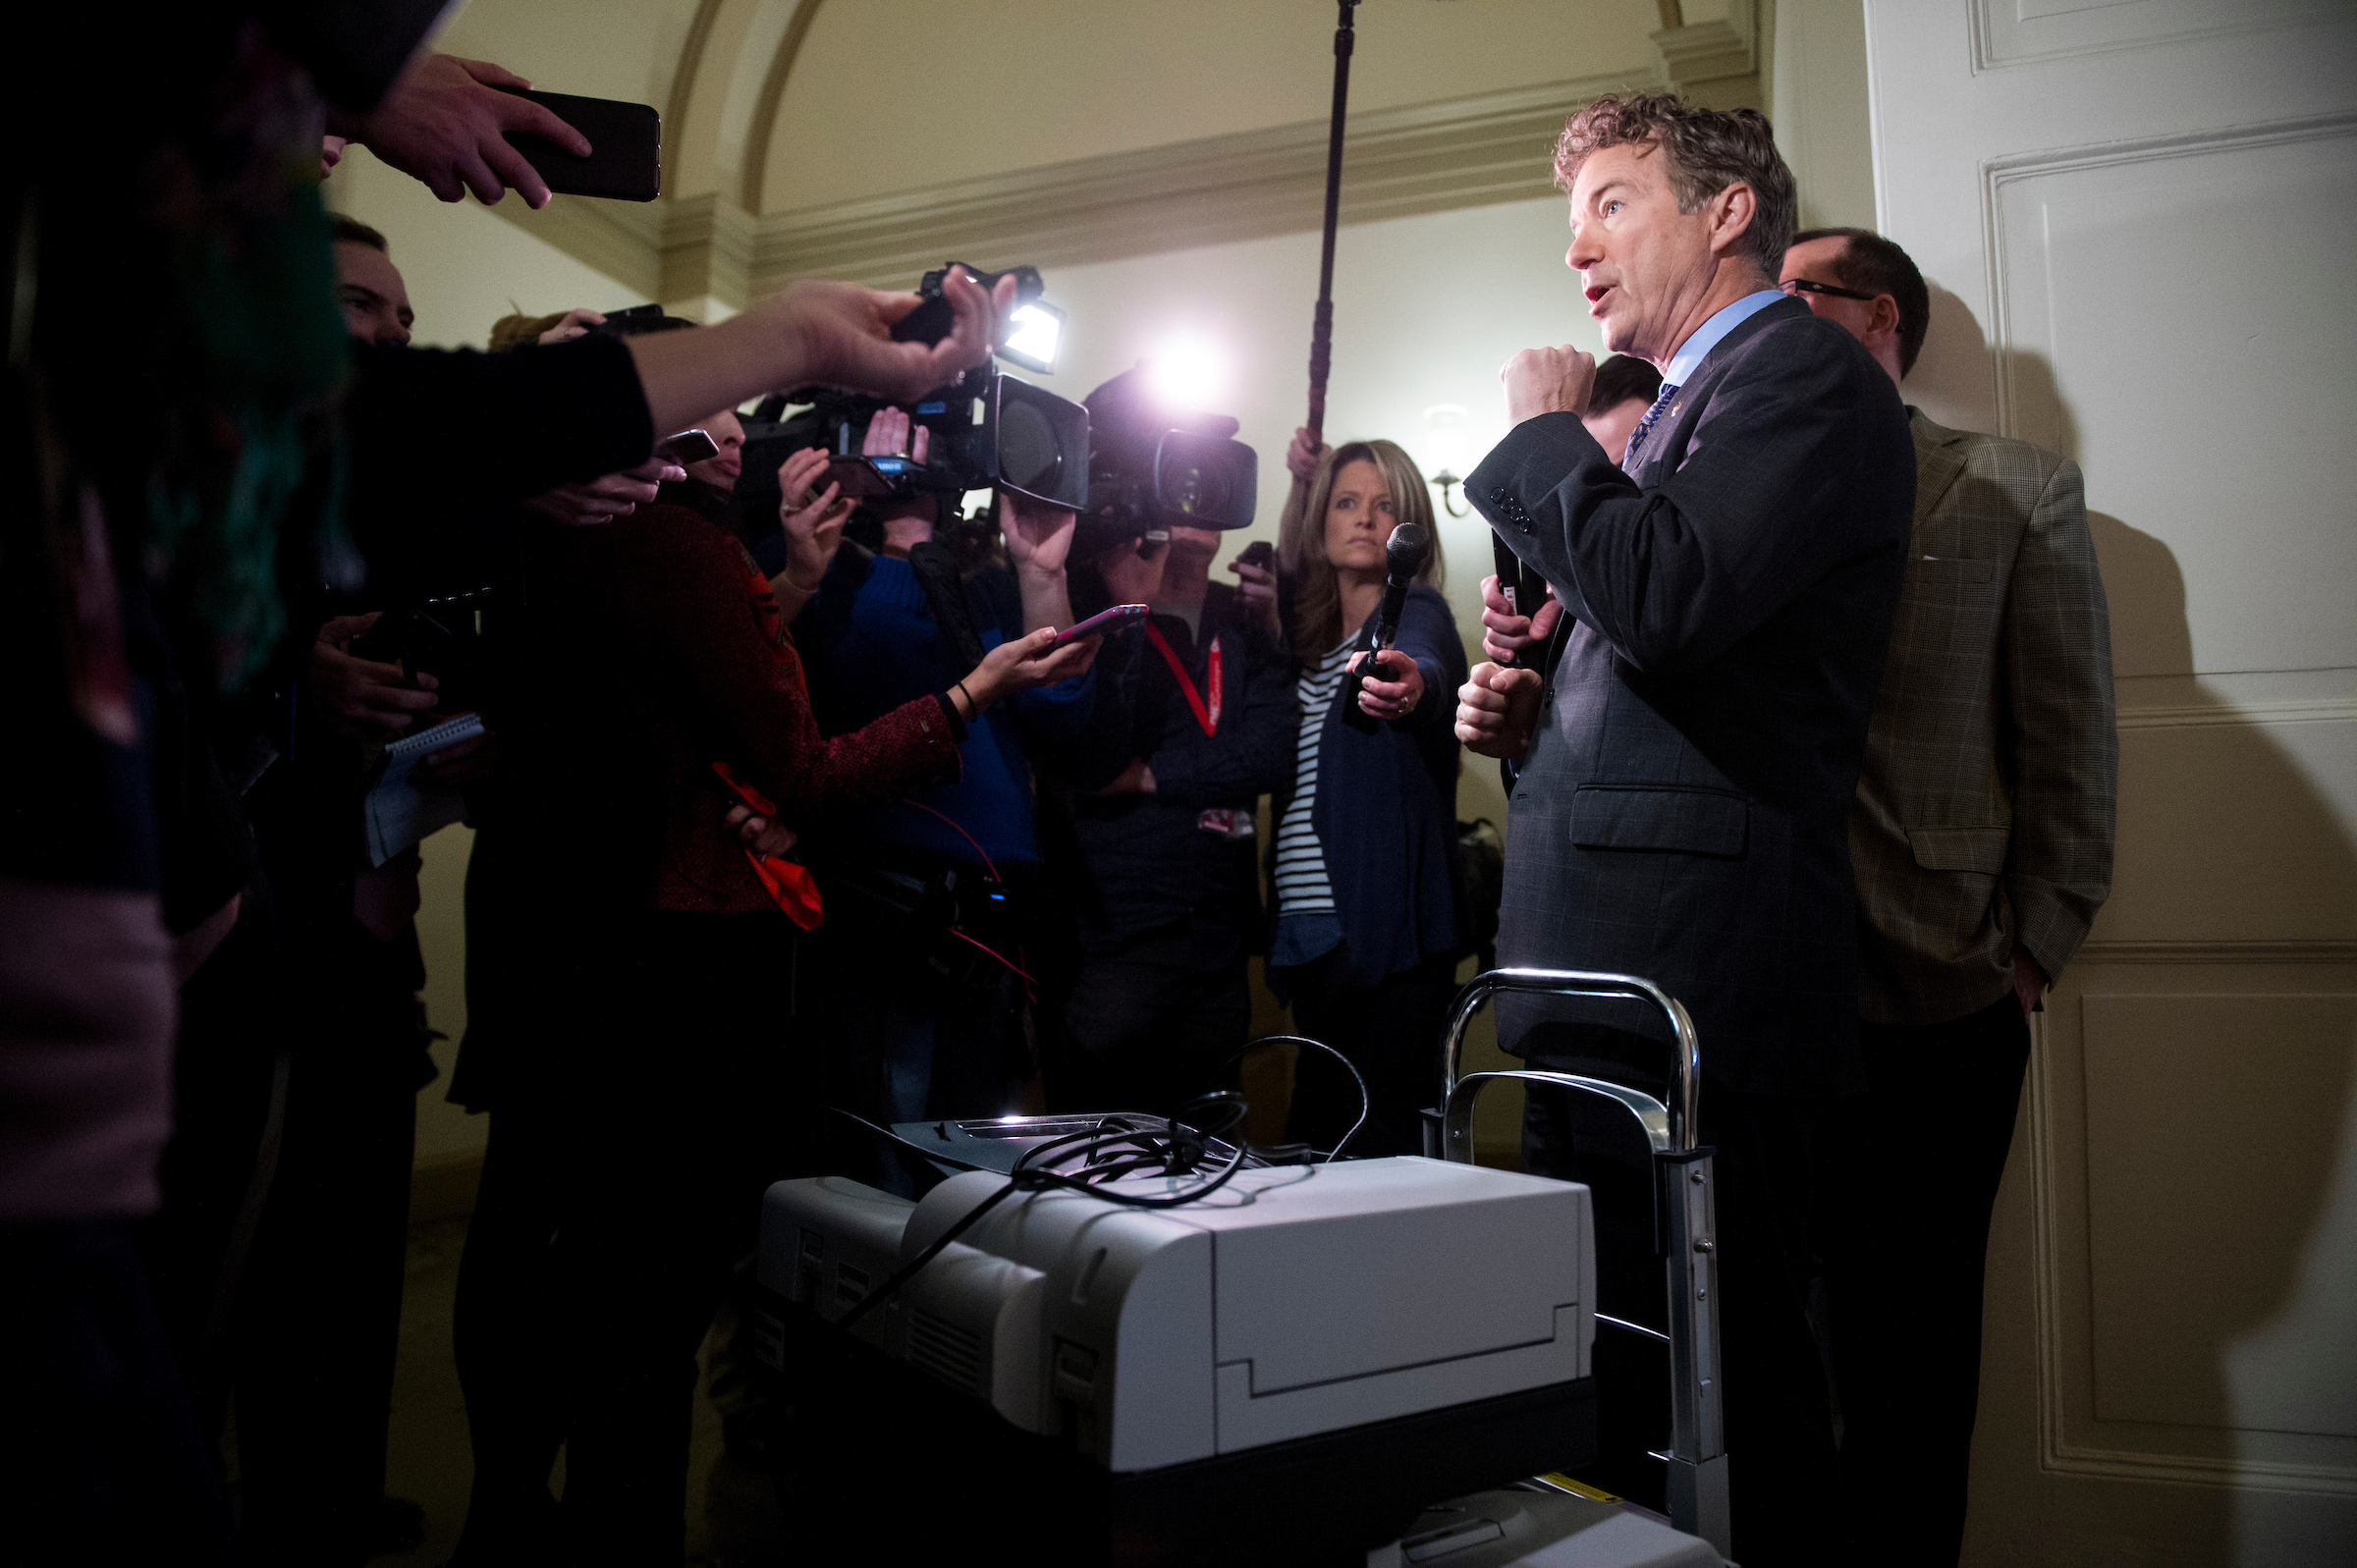 Sen. Rand Paul, R-Ky., stands with his copier on a cart as he speaks to reporters after trying to gain access to the room housing the House Republicans' secret health care plan in the Capitol on Thursday, March 2, 2017. Sen. Paul hoped to make copies of the House Republicans' health care plan. (Photo By Bill Clark/CQ Roll Call)